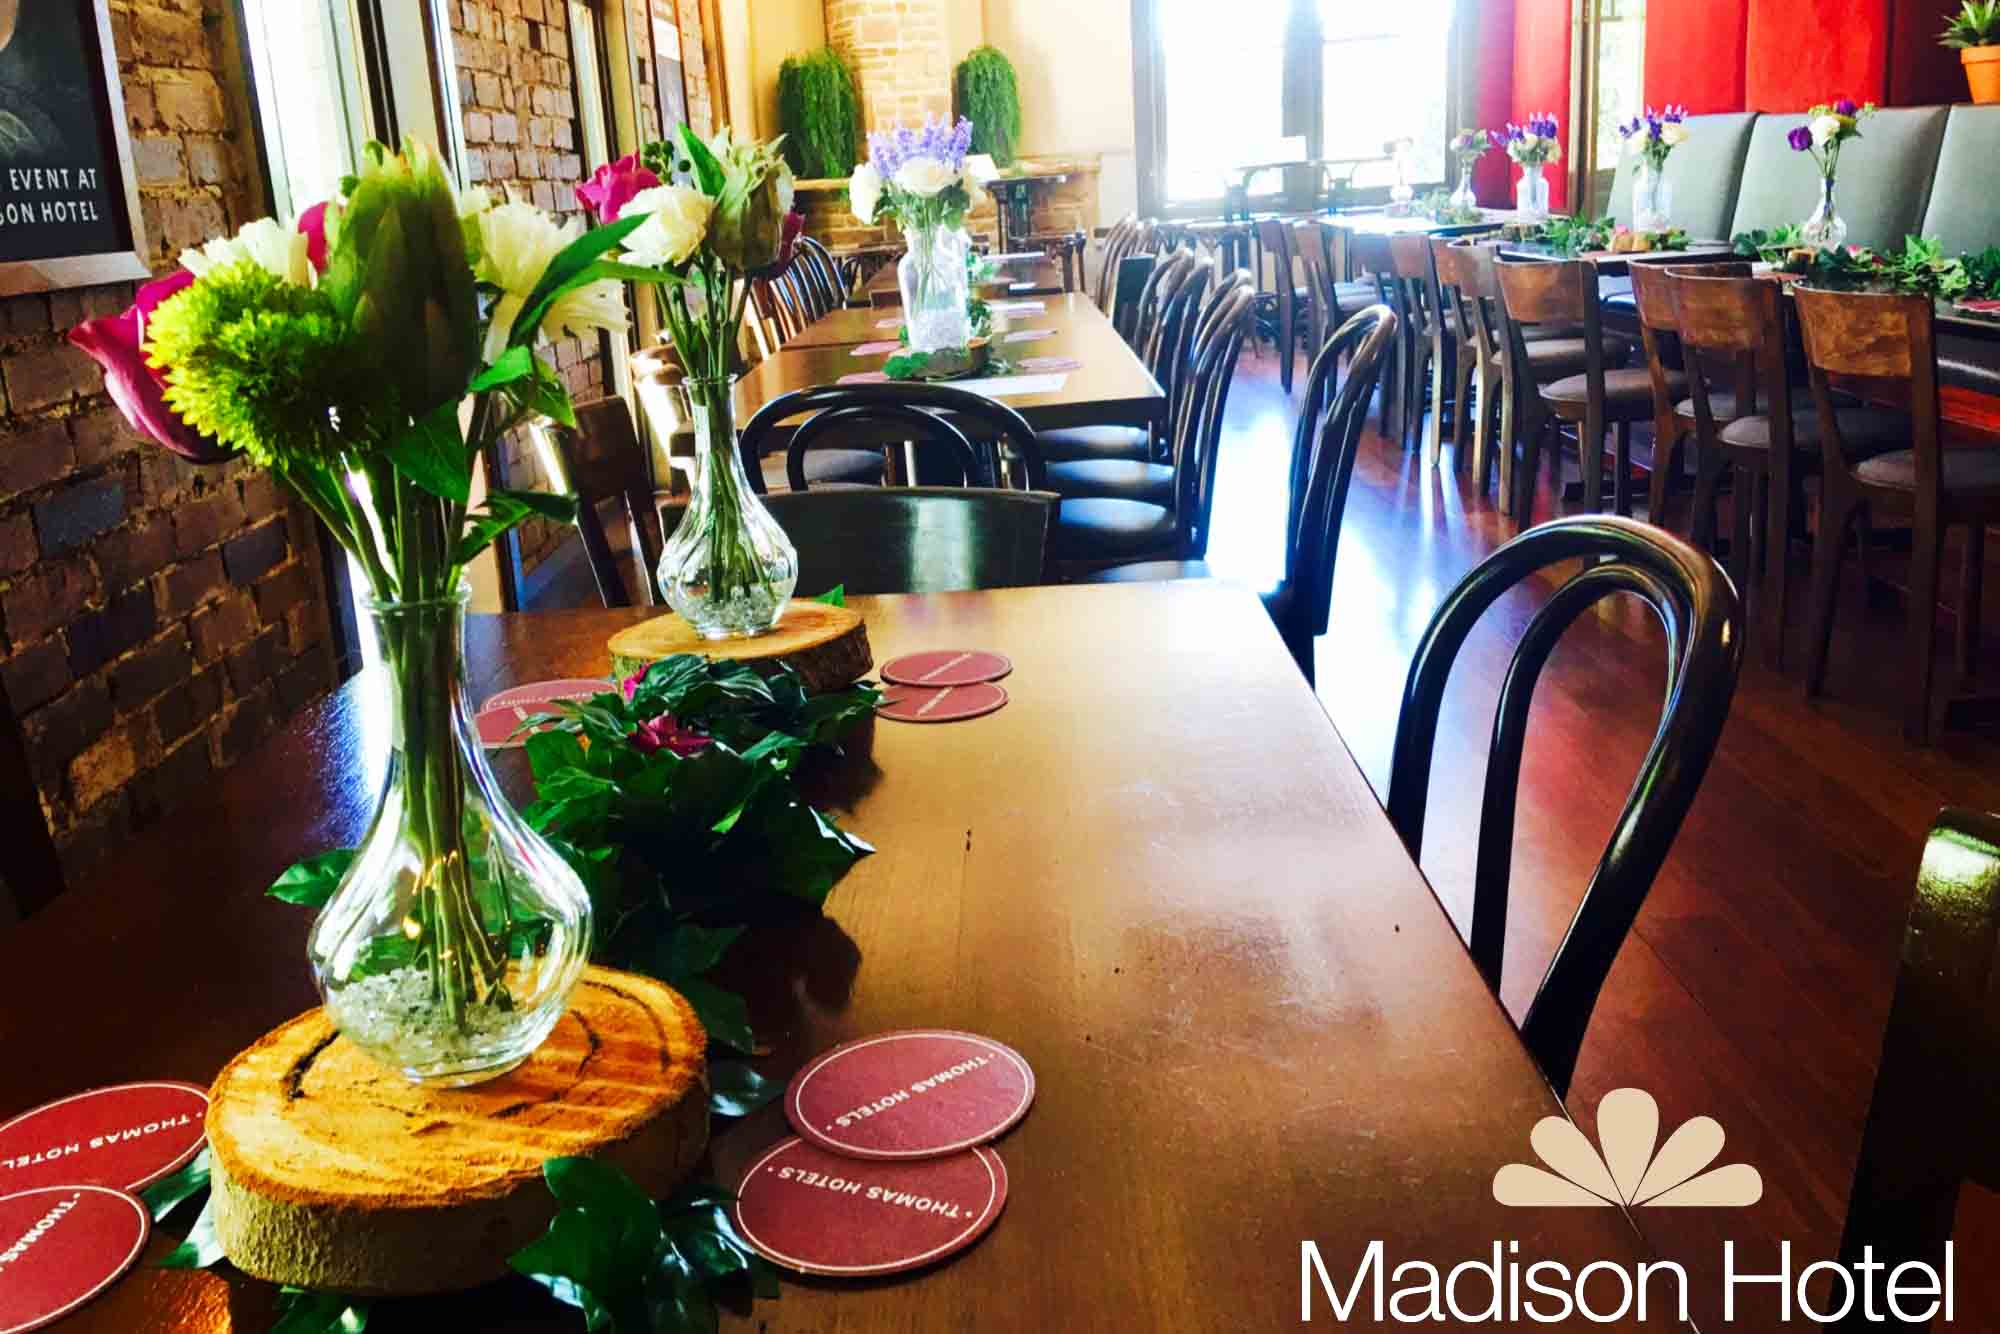 Madison Hotel – Classic Restaurants